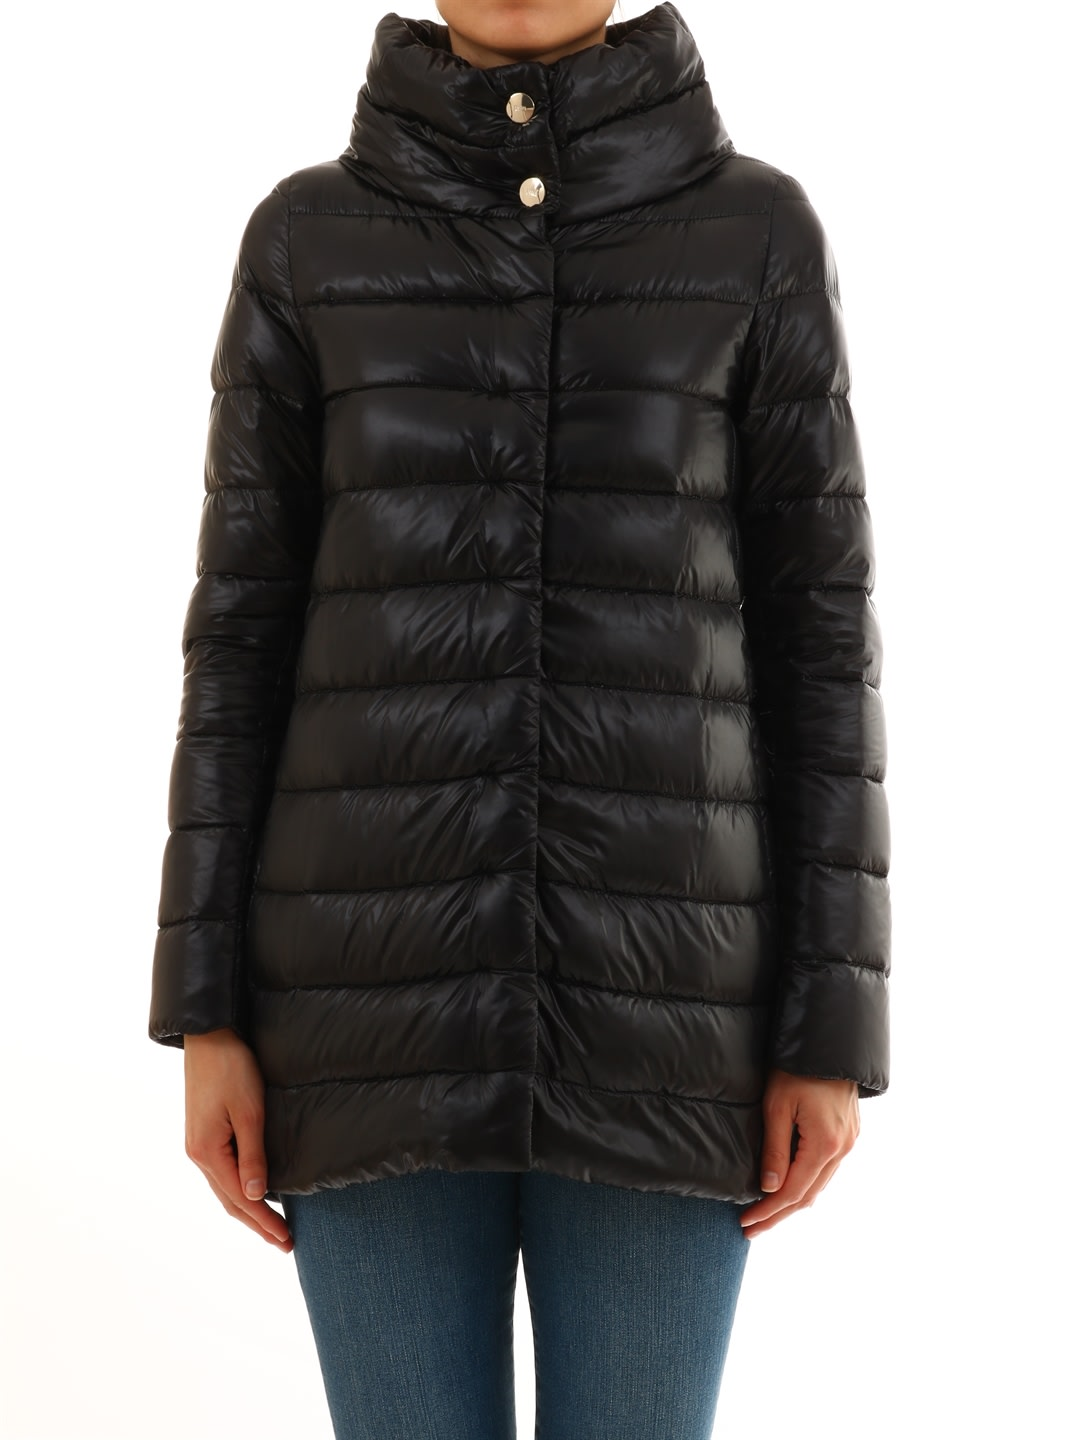 Herno Black Nylon Down Amelia Jacket